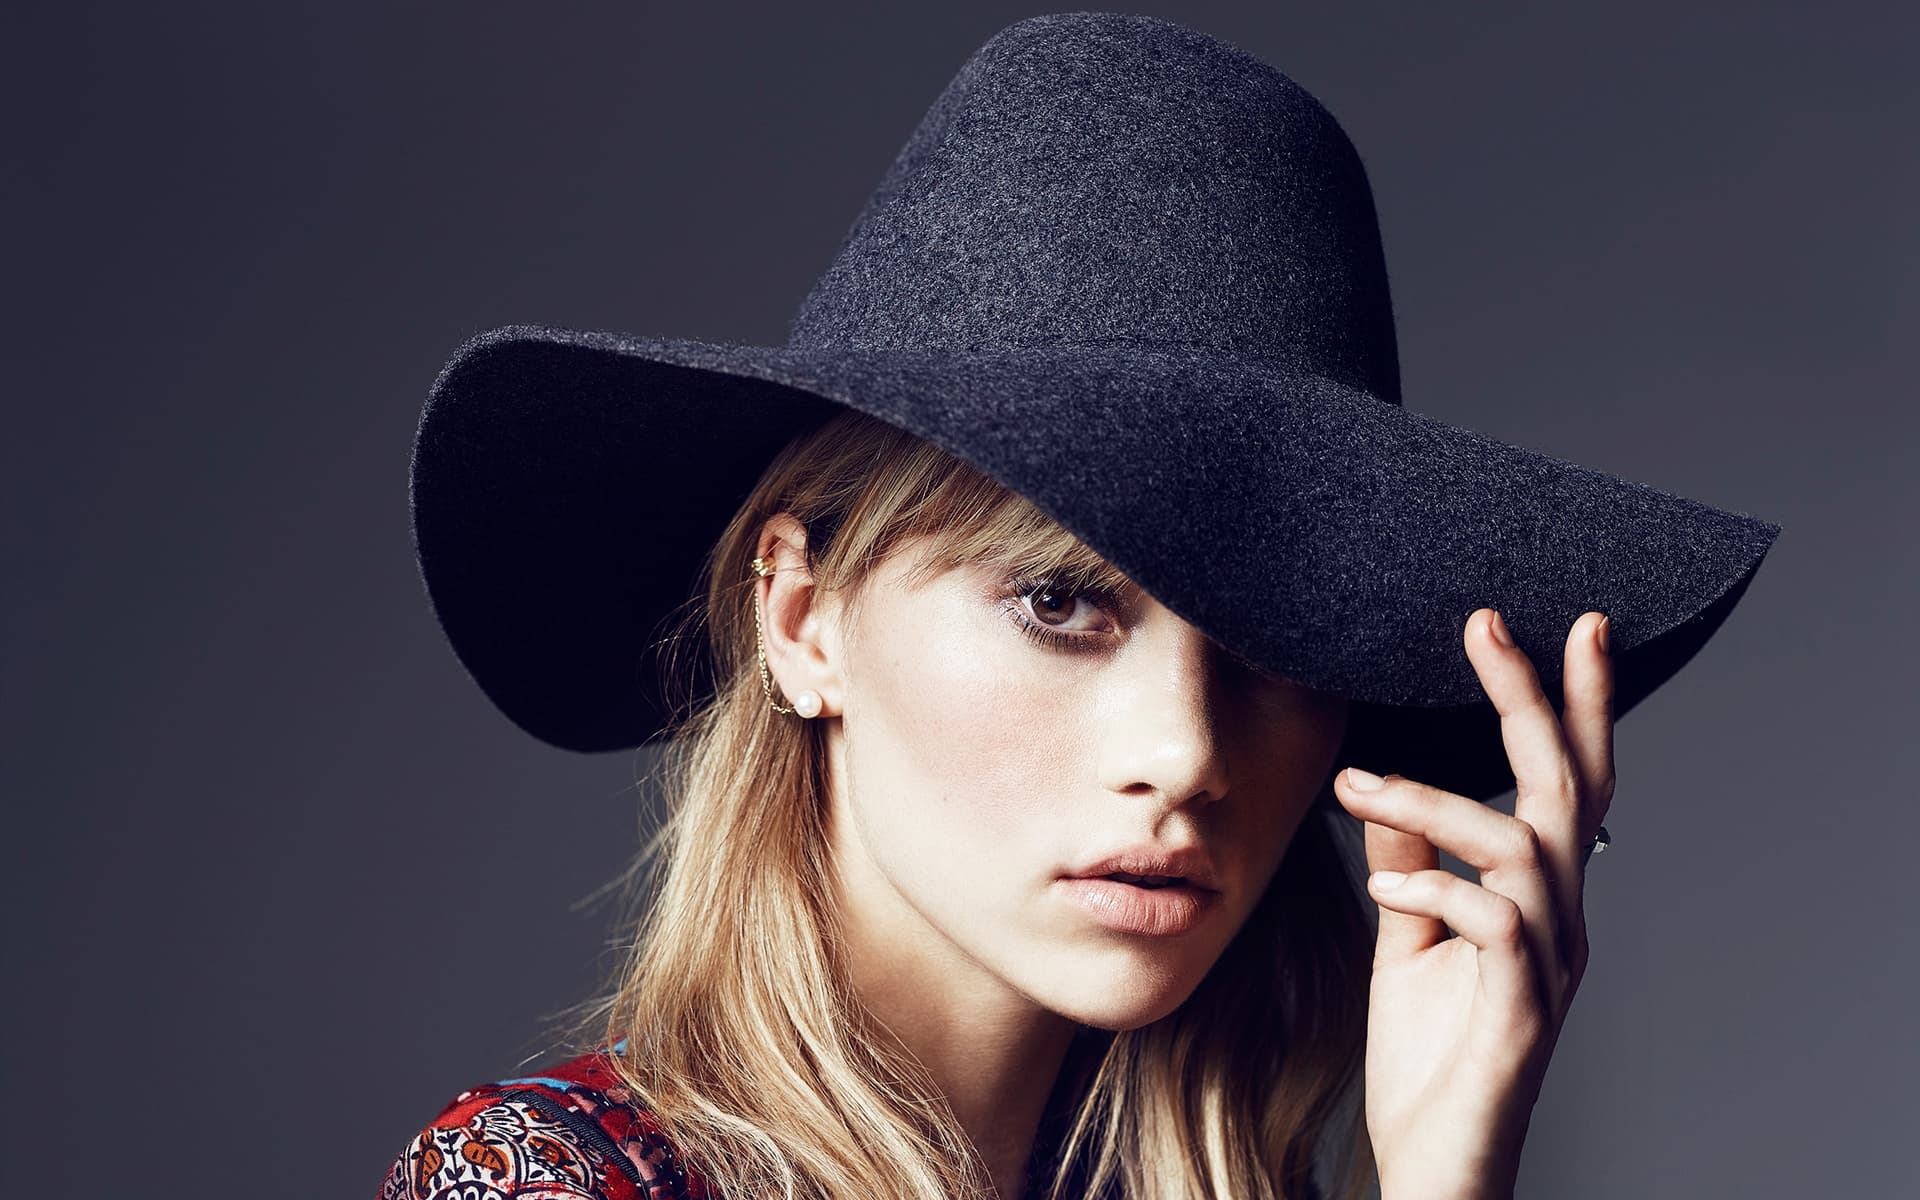 suki waterhouse hat wallpaper 59426